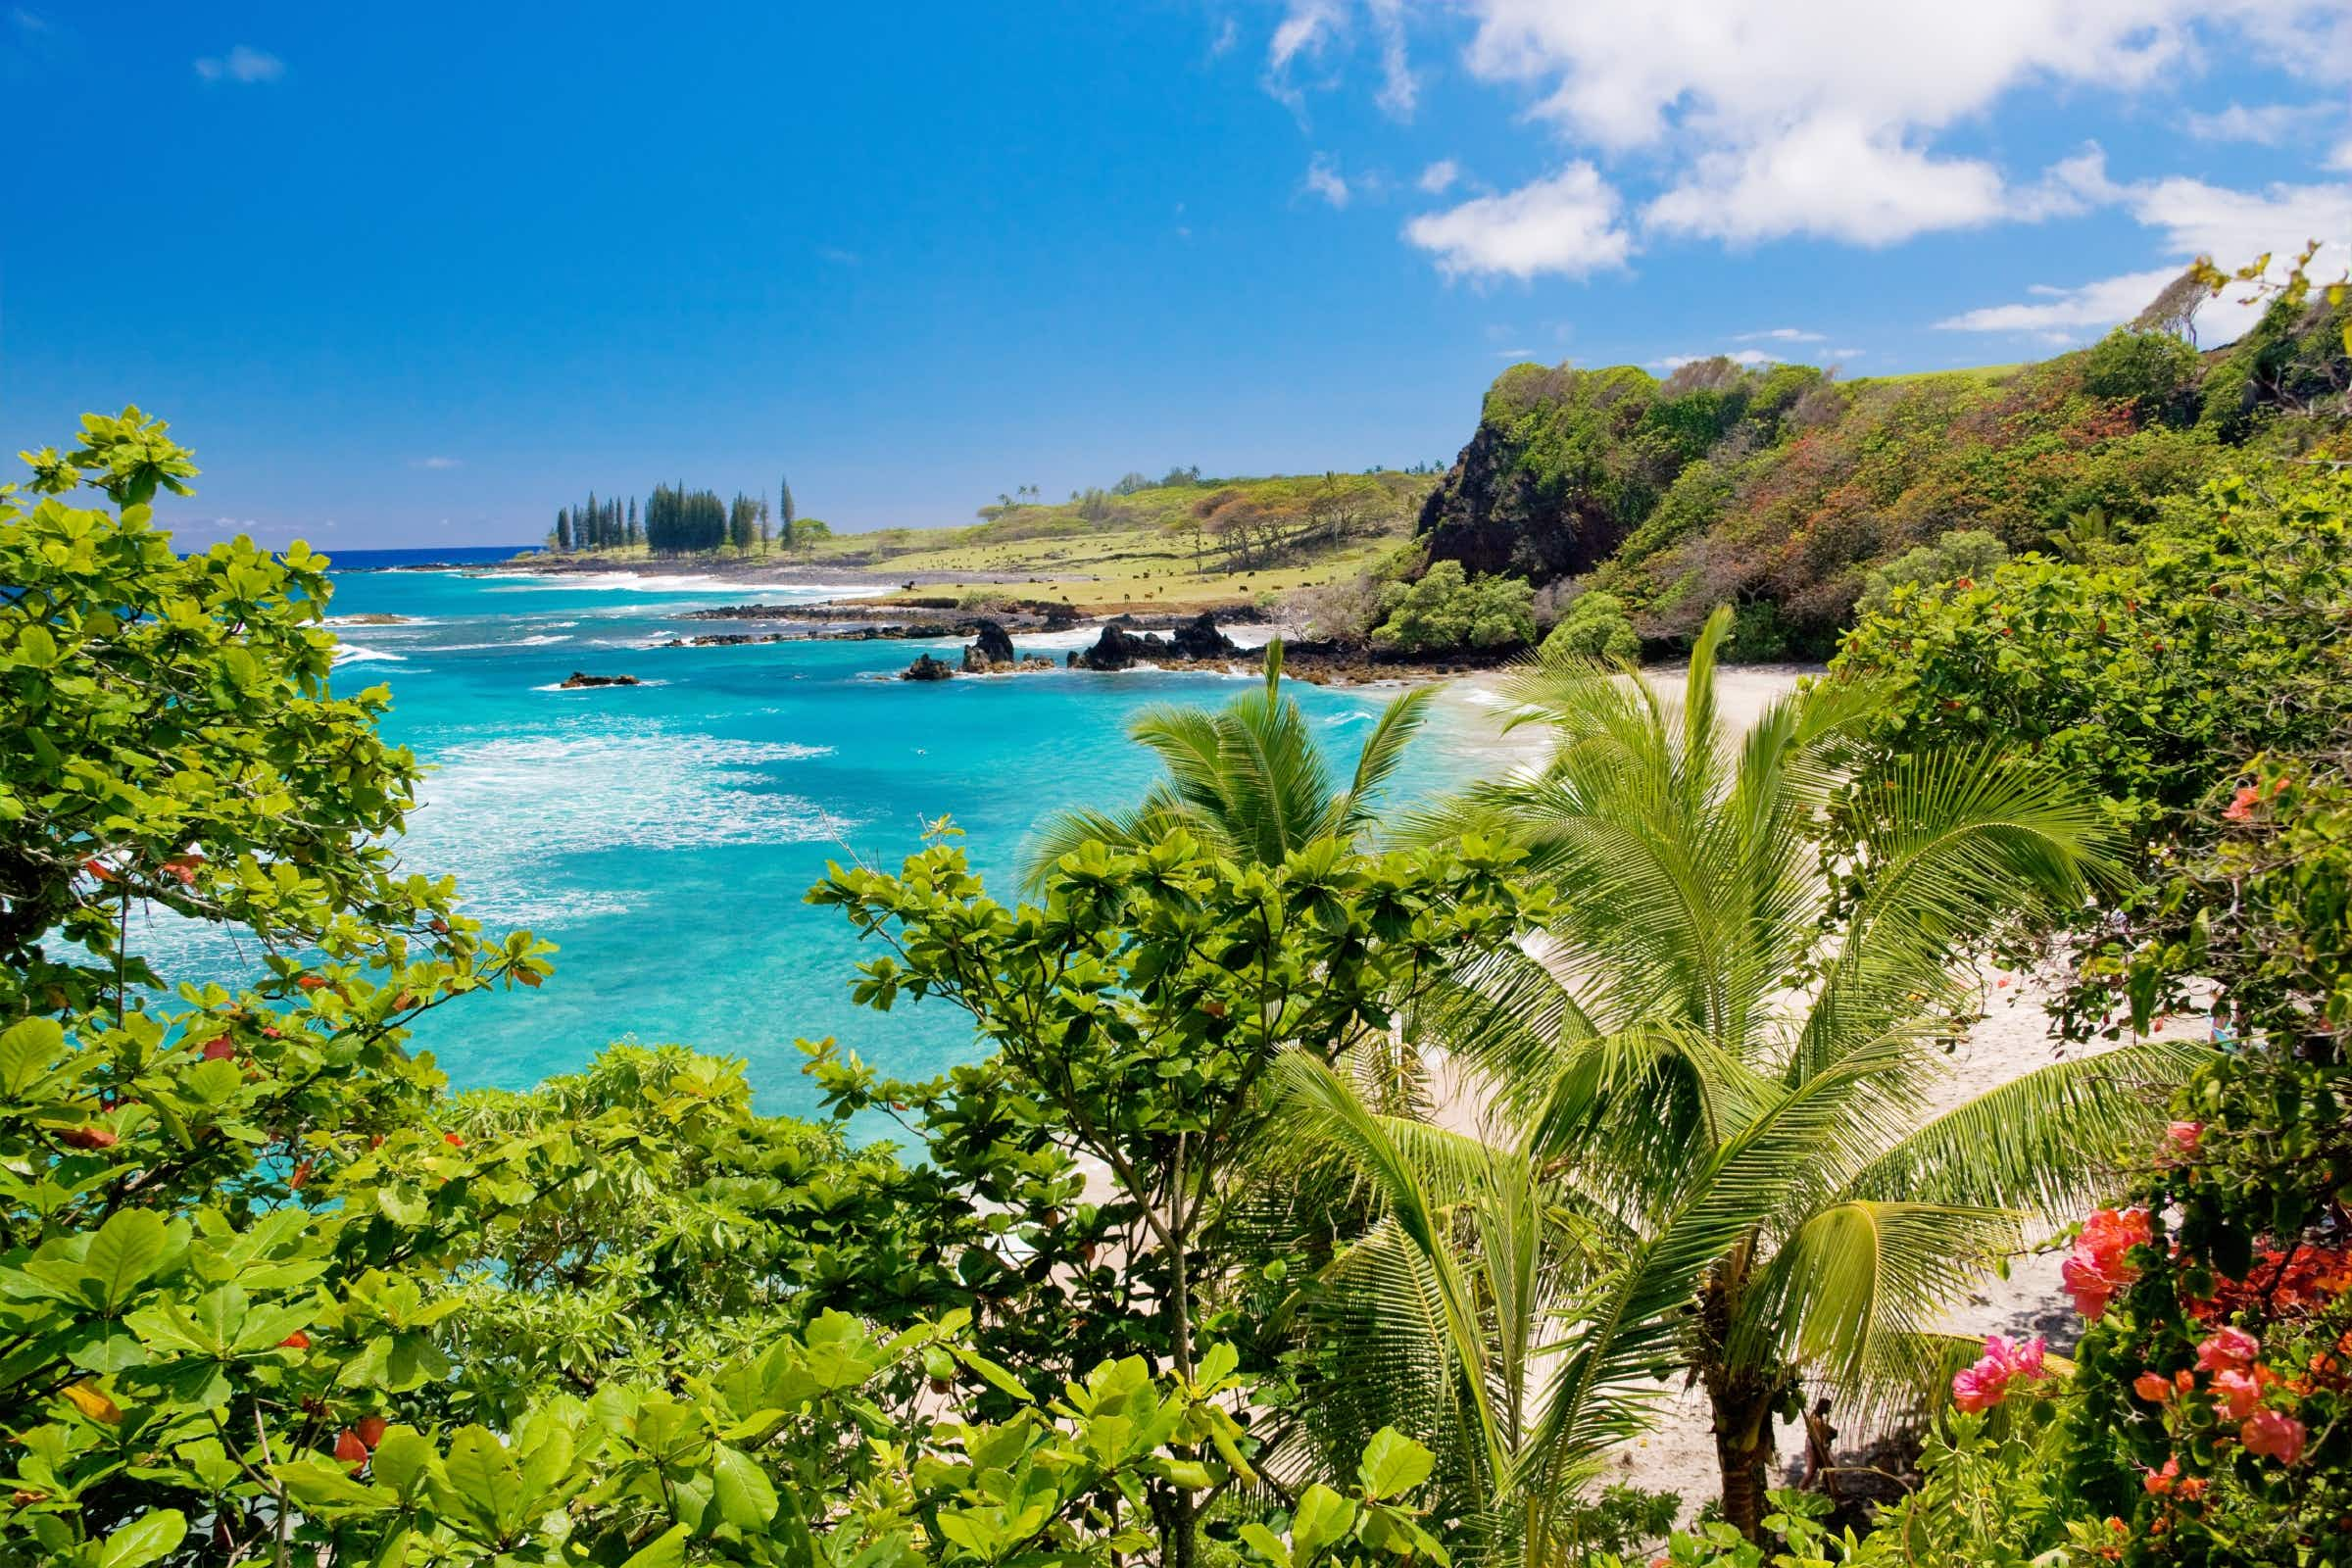 Tinder is sending a match to Maui after they spent three years messaging each other